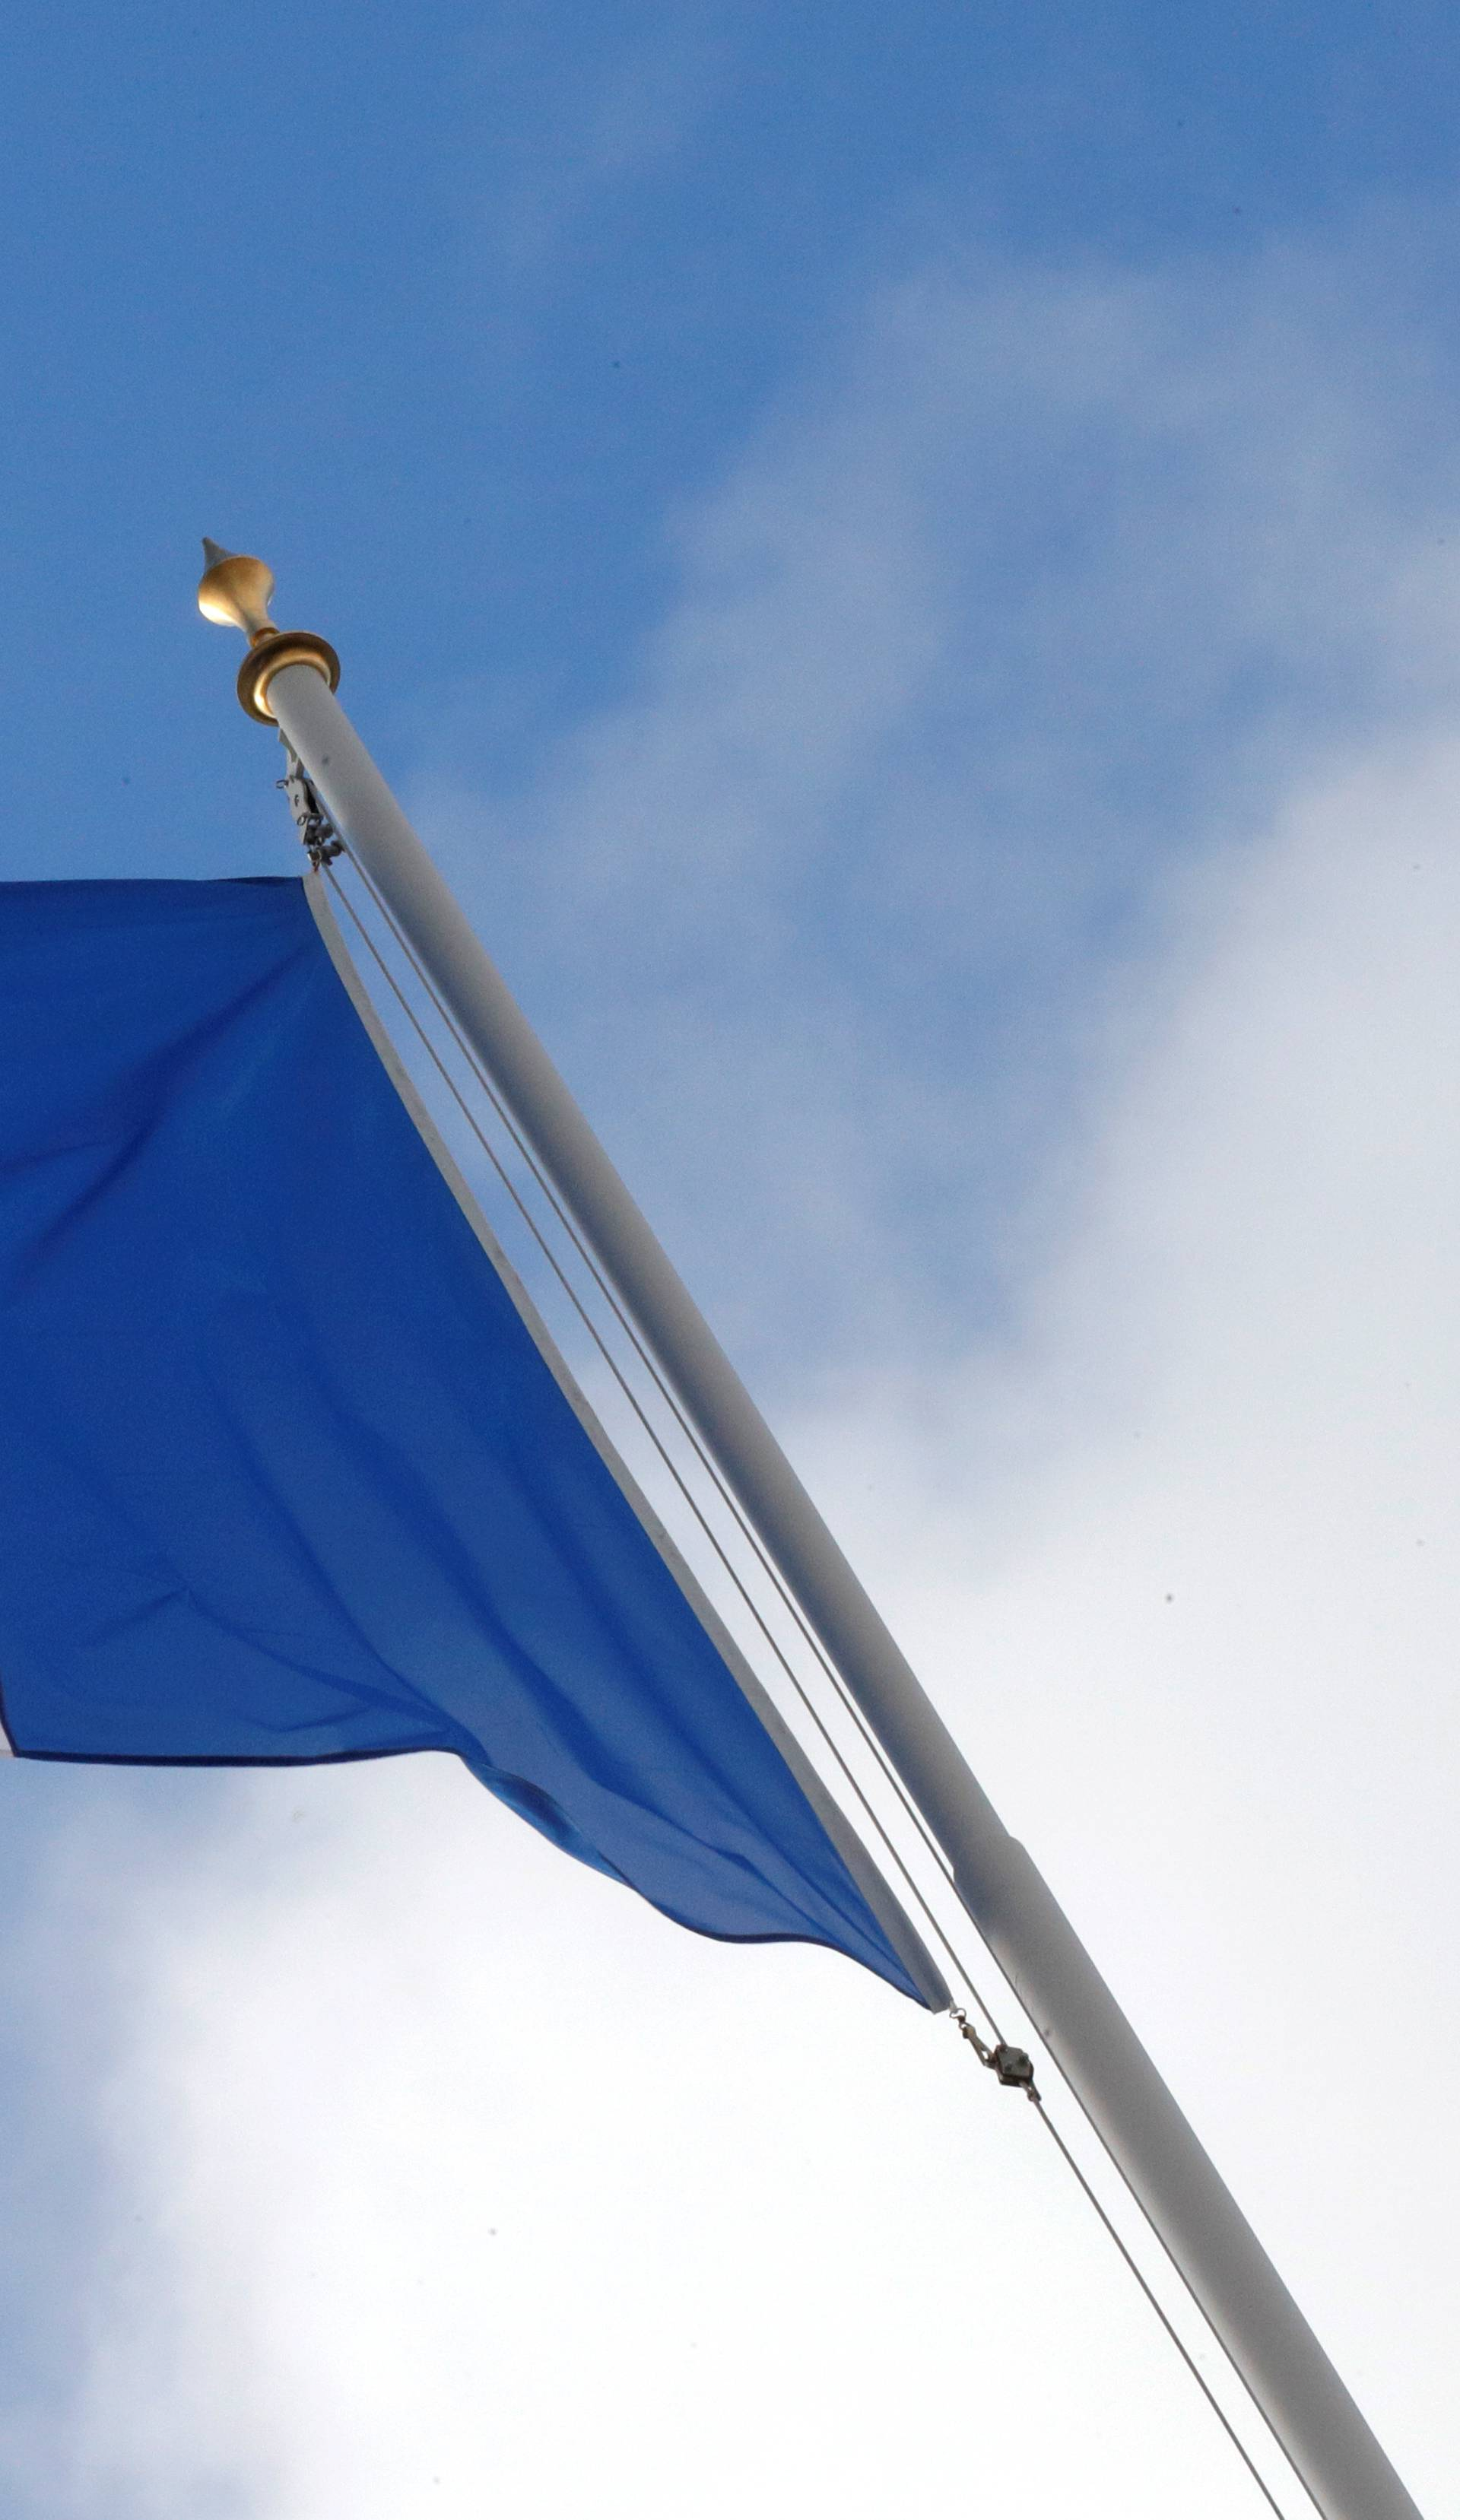 FILE PHOTO: A French flag flutters in the sky over the Elysee Palace in Paris